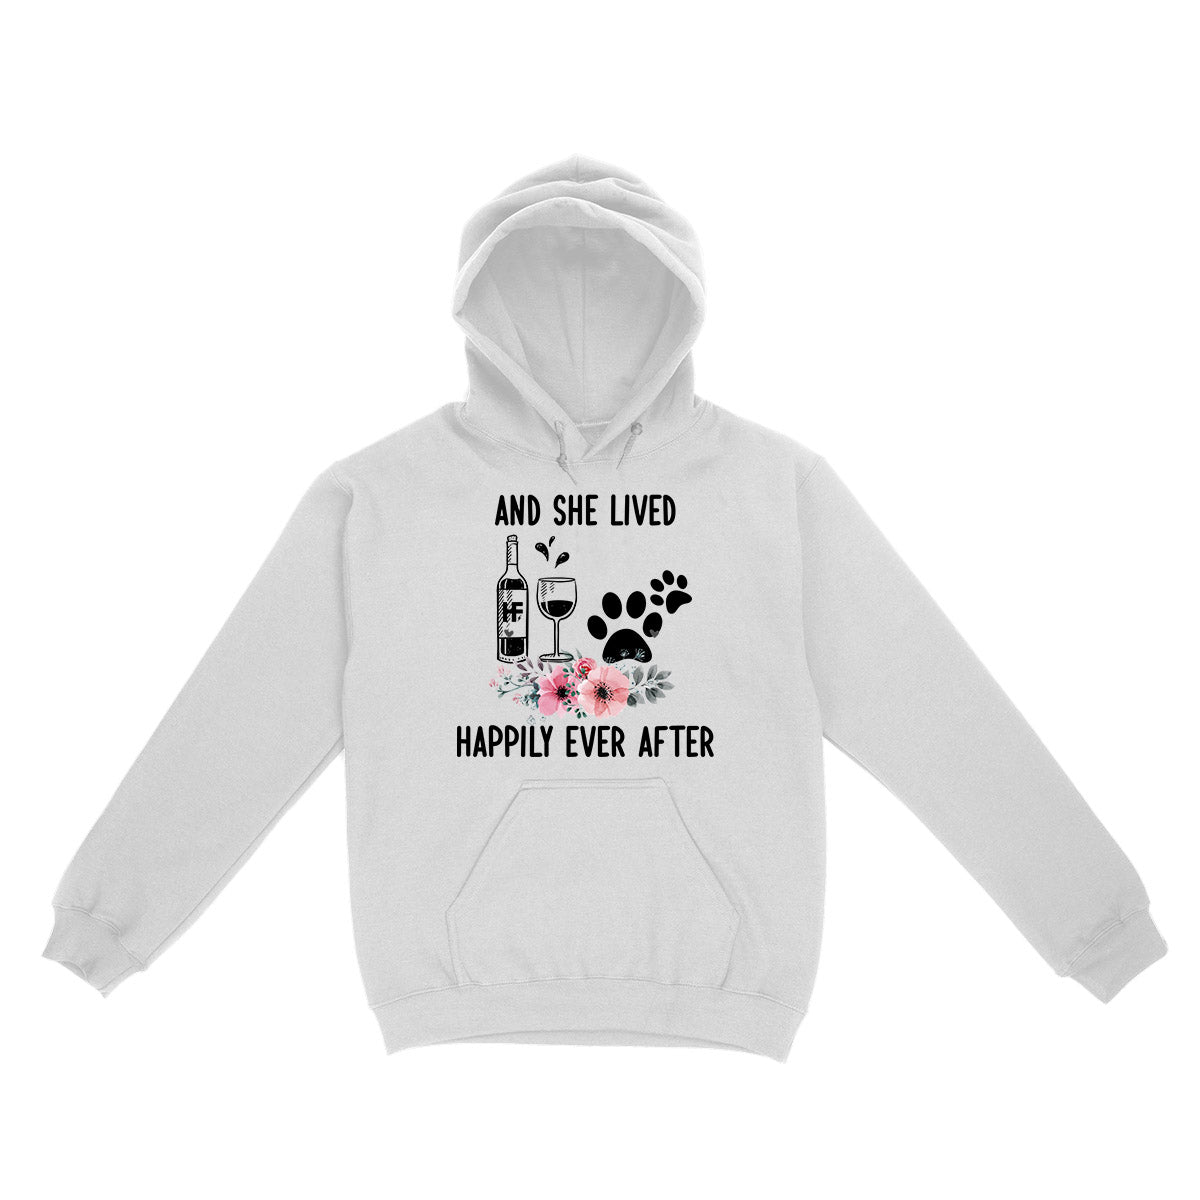 And she lived happily ever after wine dog EZ03 2703 Hoodie